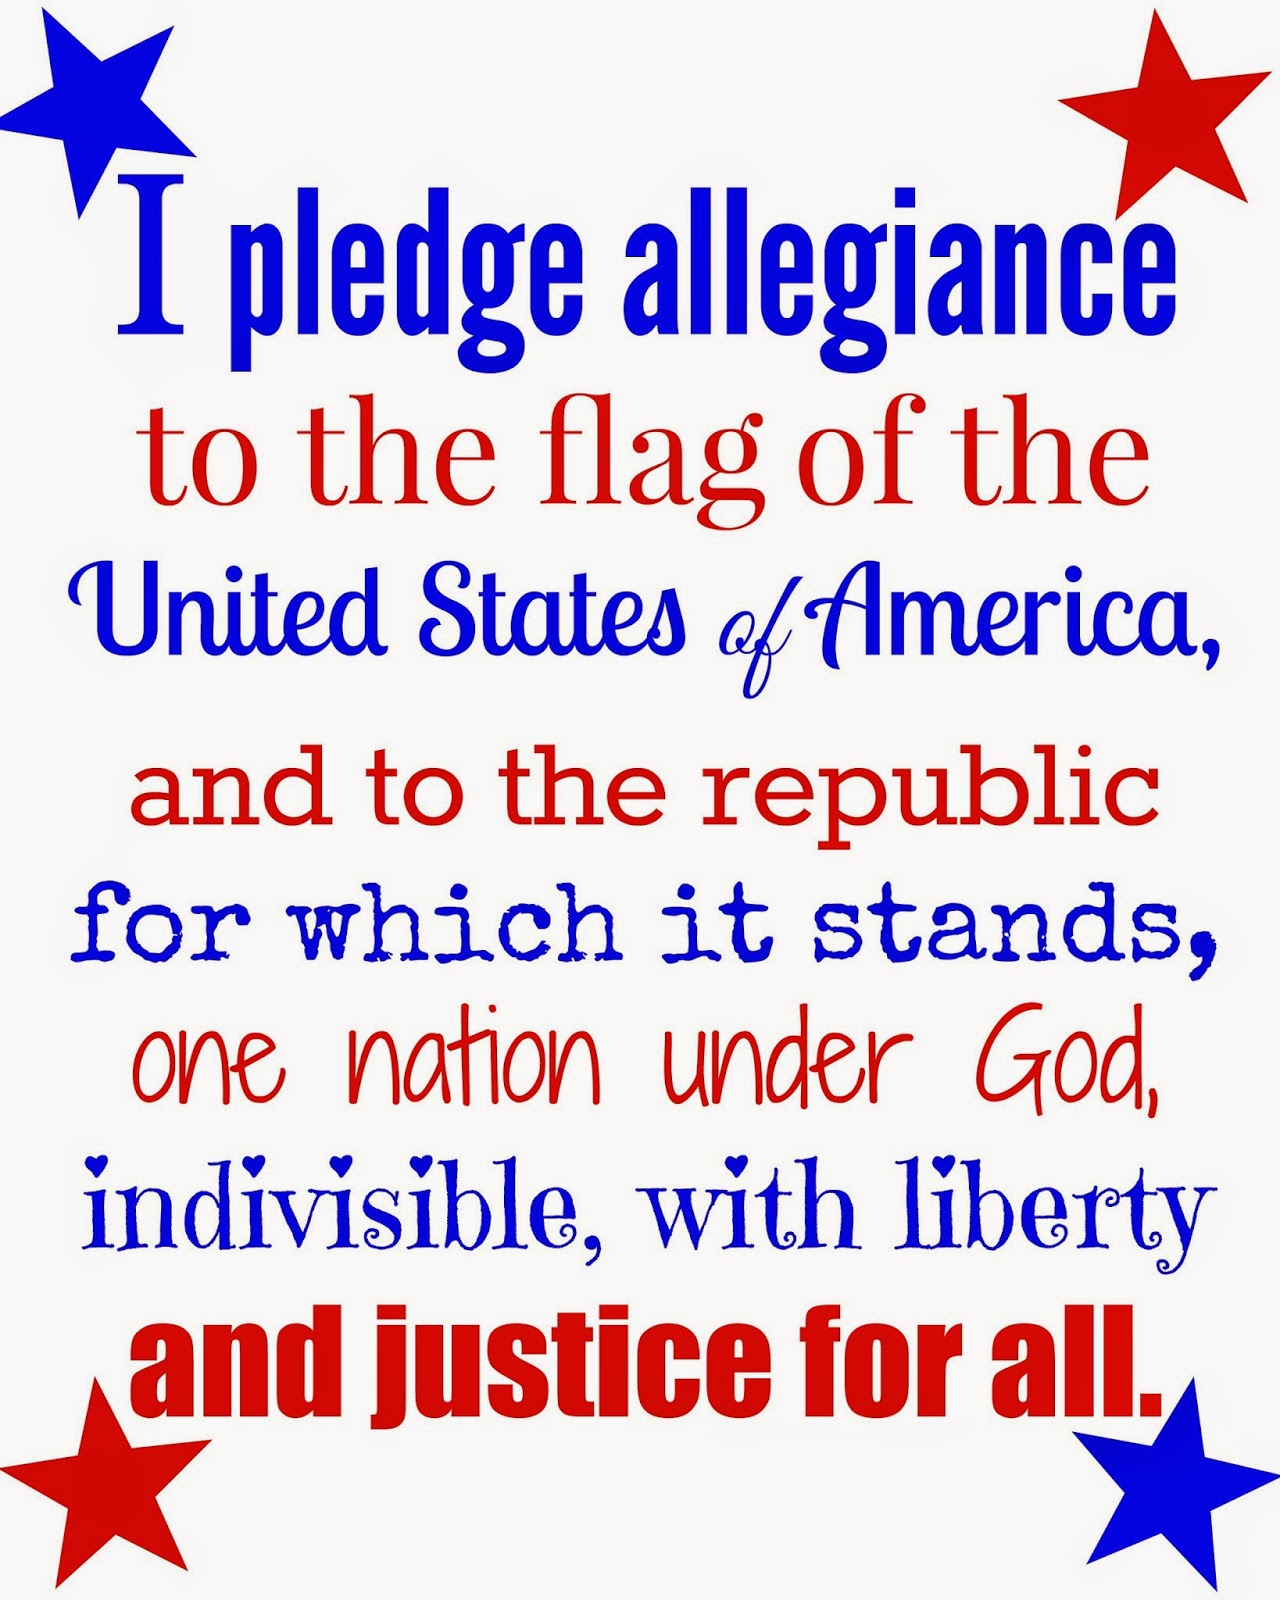 a paper on unconstitutionality of the pledge of allegiance Learn more about the pledge of allegiance in this article  and a detailed report  issued by the us library of congress in 1957 supported the  flag was an  unconstitutional violation of their freedom of speech and religion.